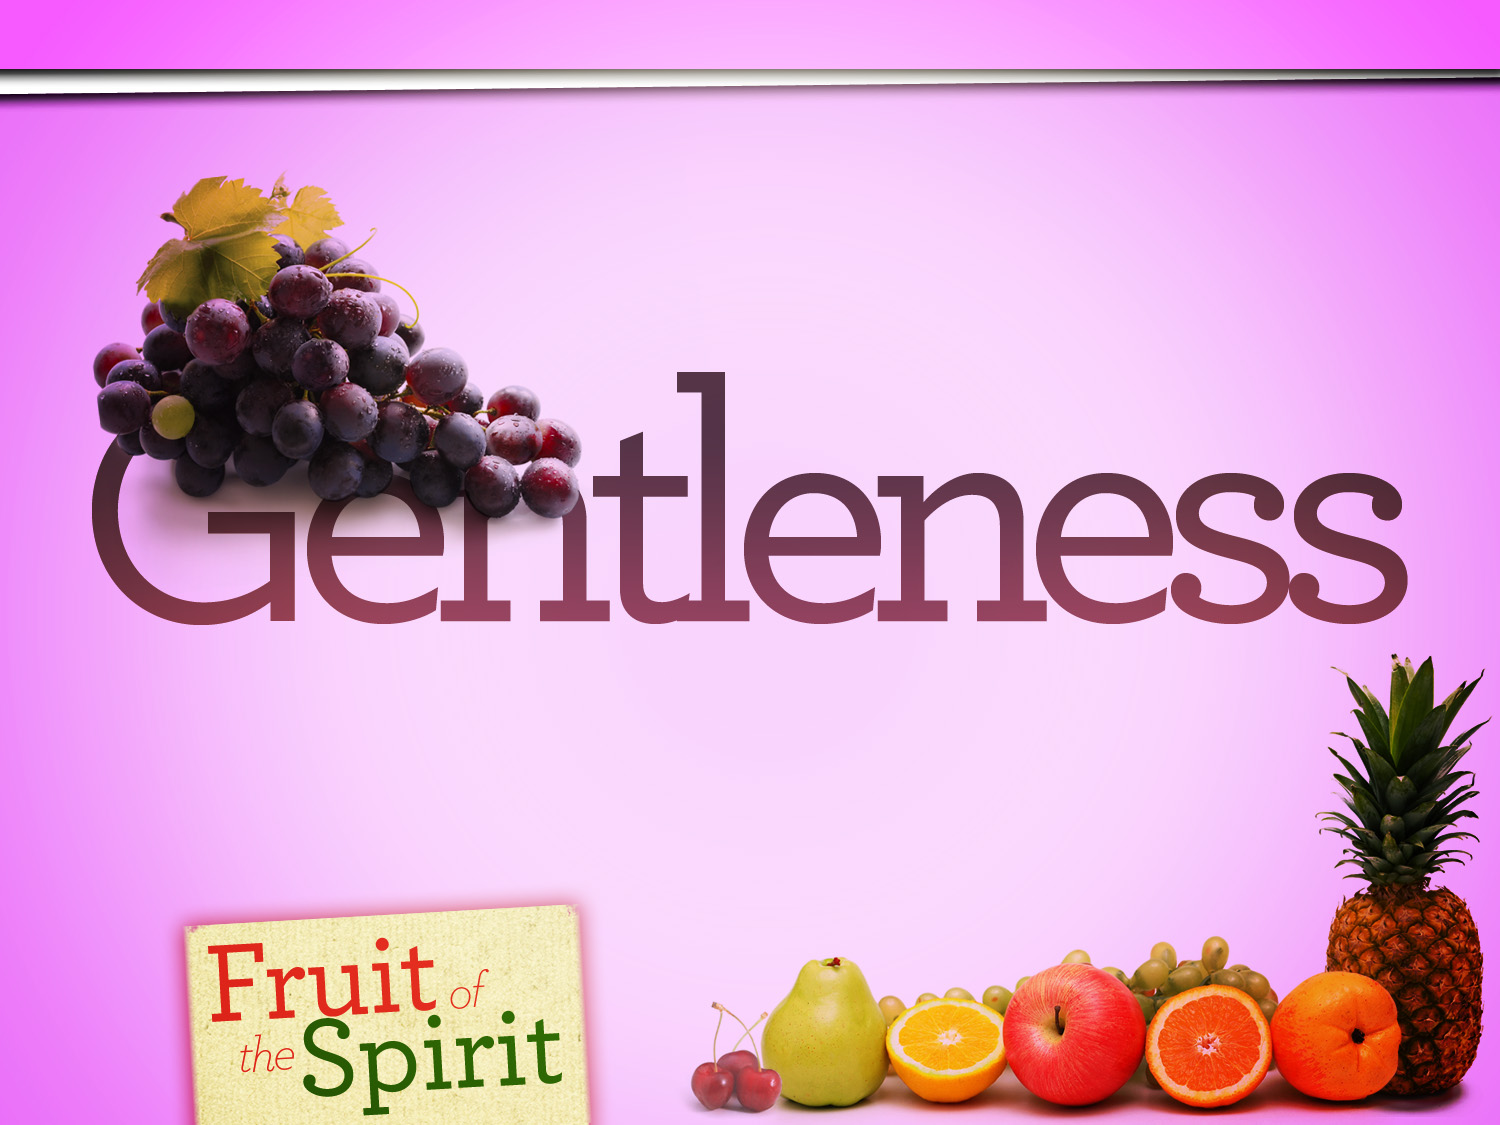 God S Breath Publications 187 Fruit Of The Spirit Gentleness